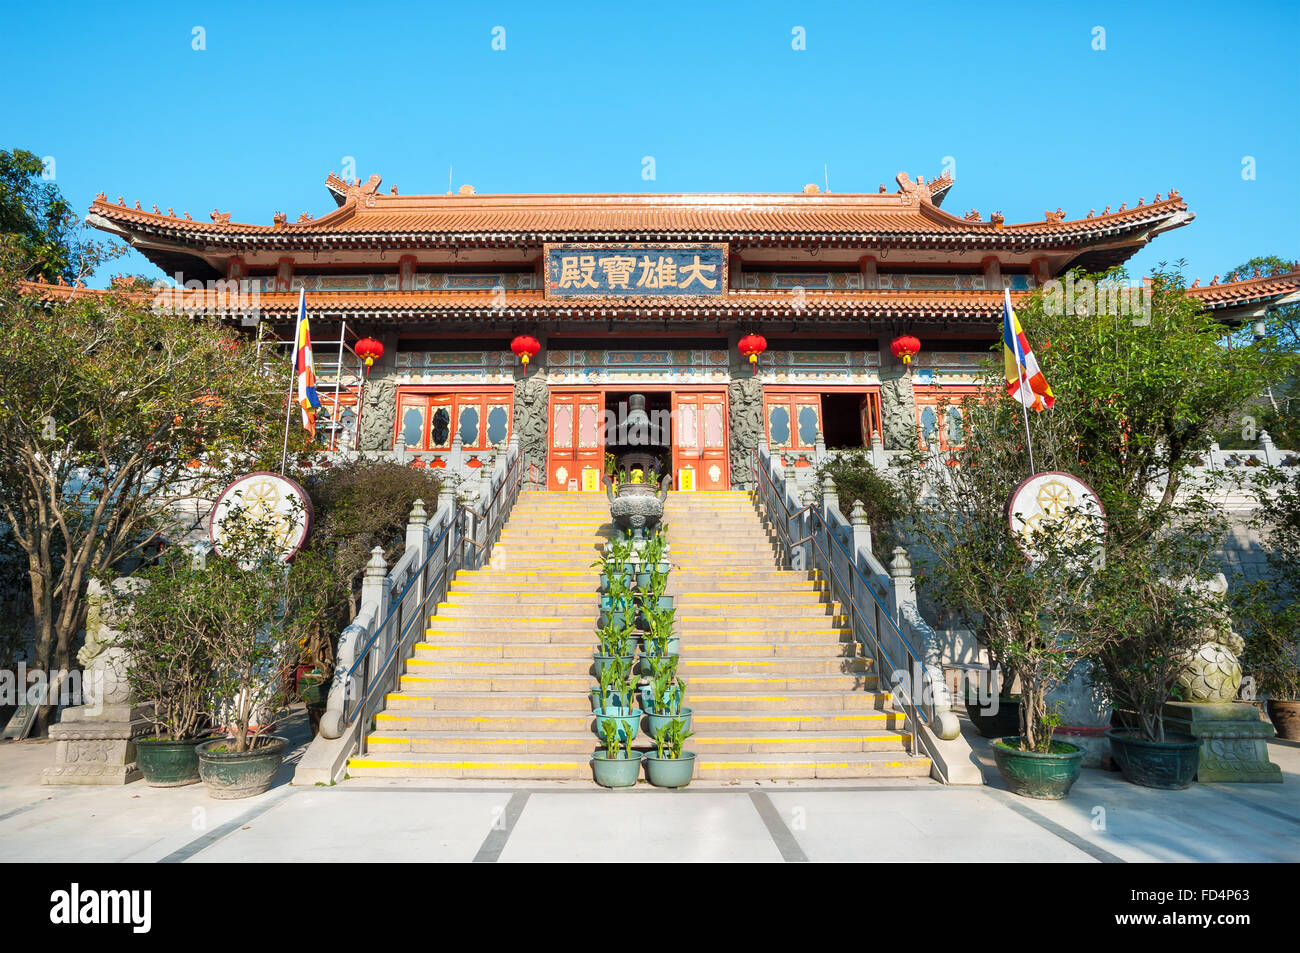 Main hall of Po Lin Monastery, Lantau, Hong Kong - Stock Image